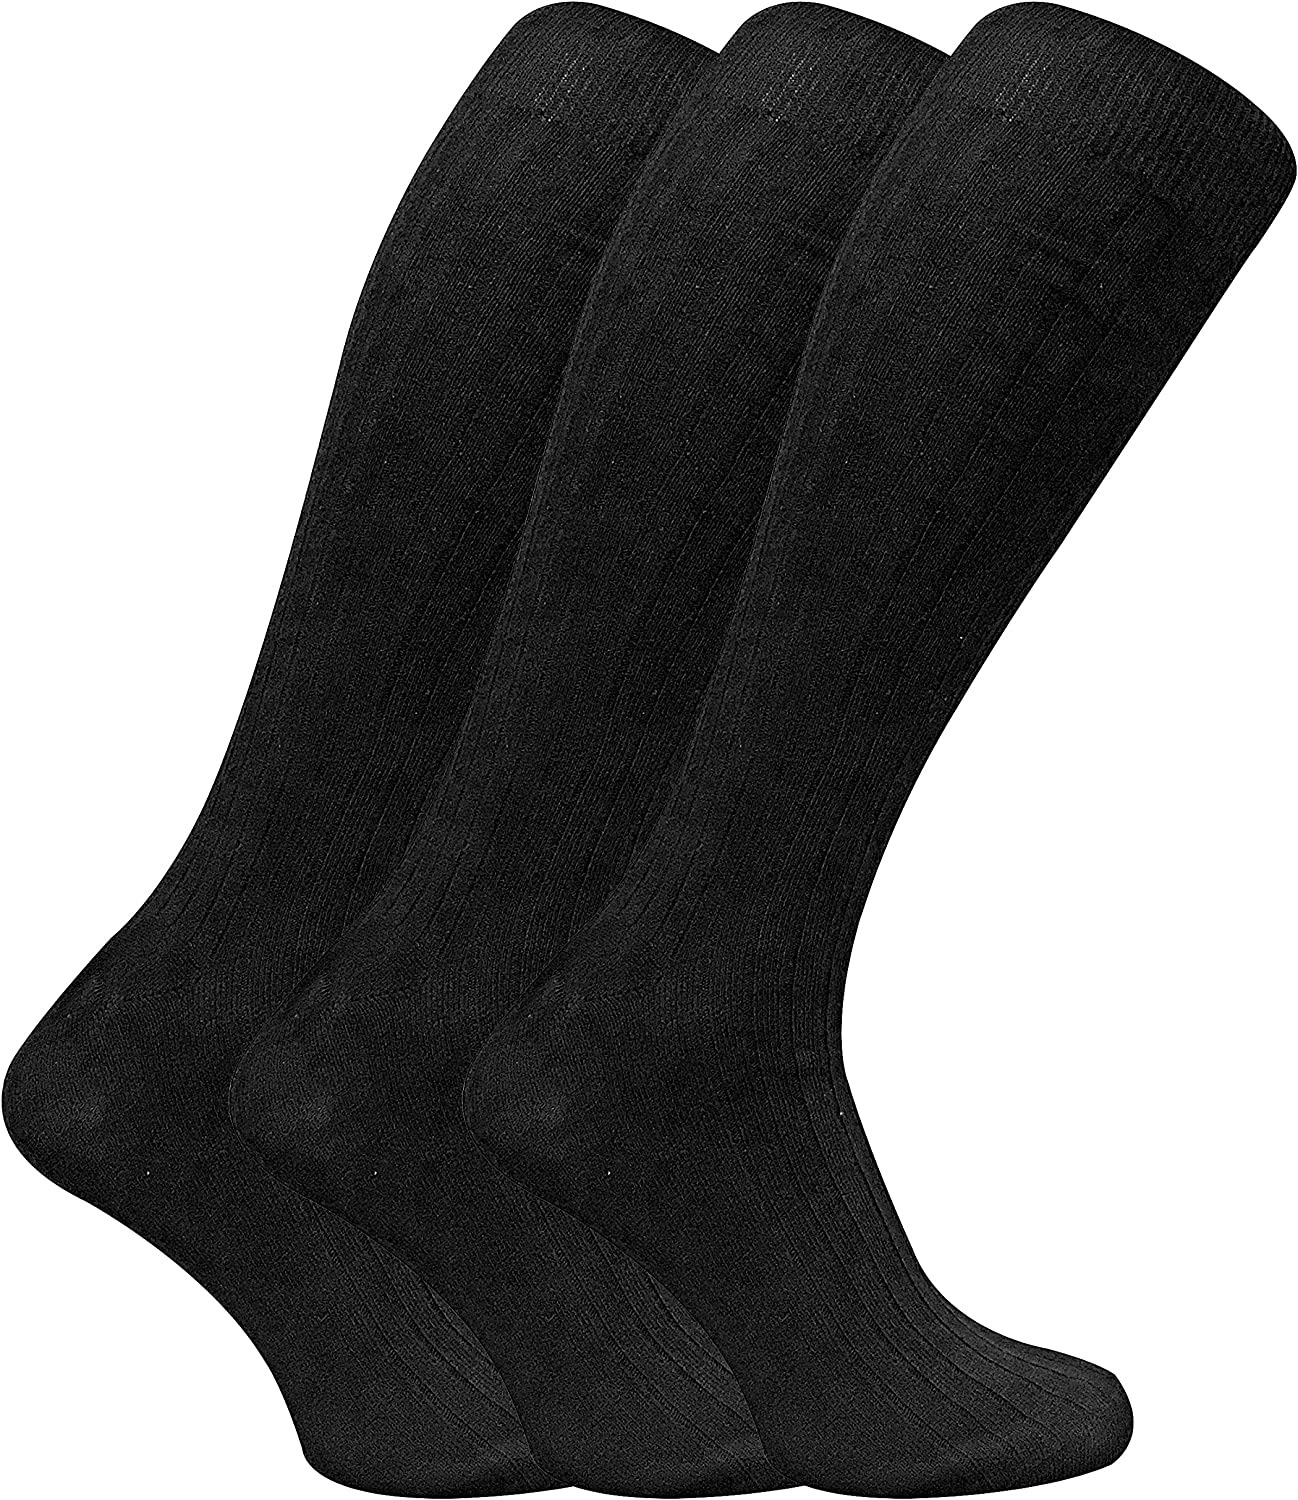 3 Pack Mens 100% Cotton Over the Calf Knee High Lightweight Ribbed Dress Socks